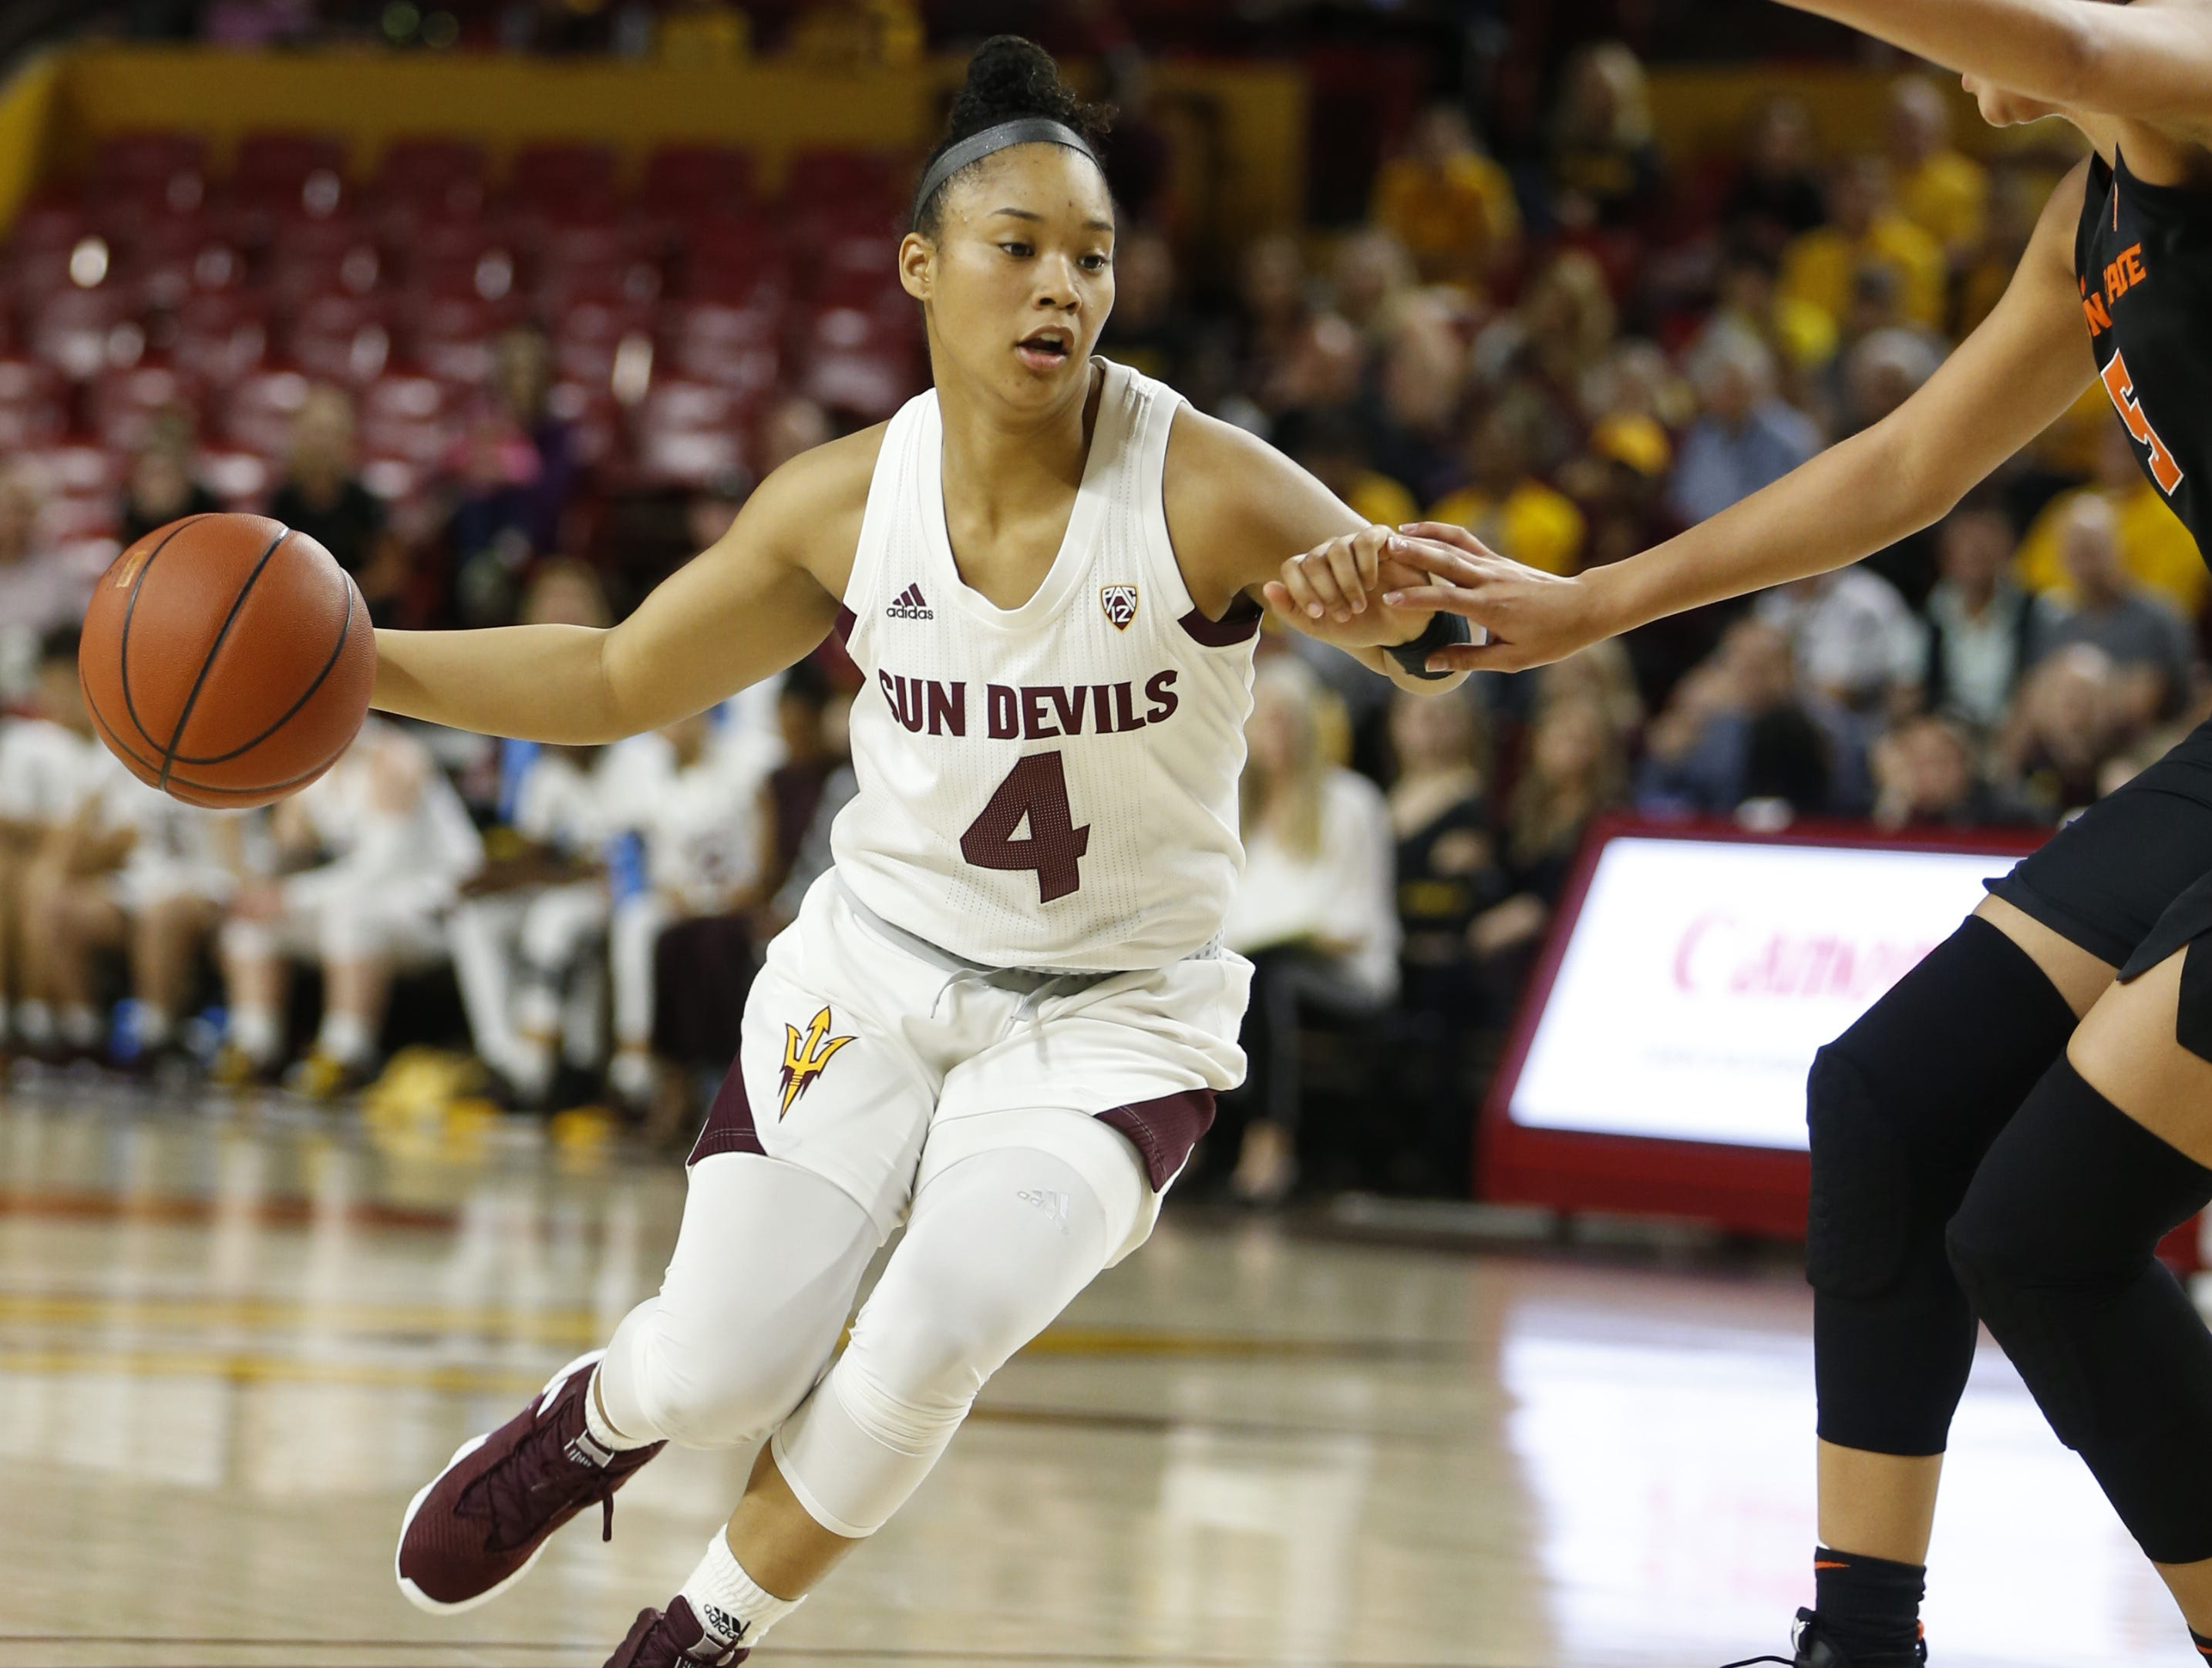 ASU's Kiara Russell (4) dribbles against Oregon State's Taya Corosdale (5) during the first half at Wells Fargo Arena in Tempe, Ariz. on March 1, 2019.